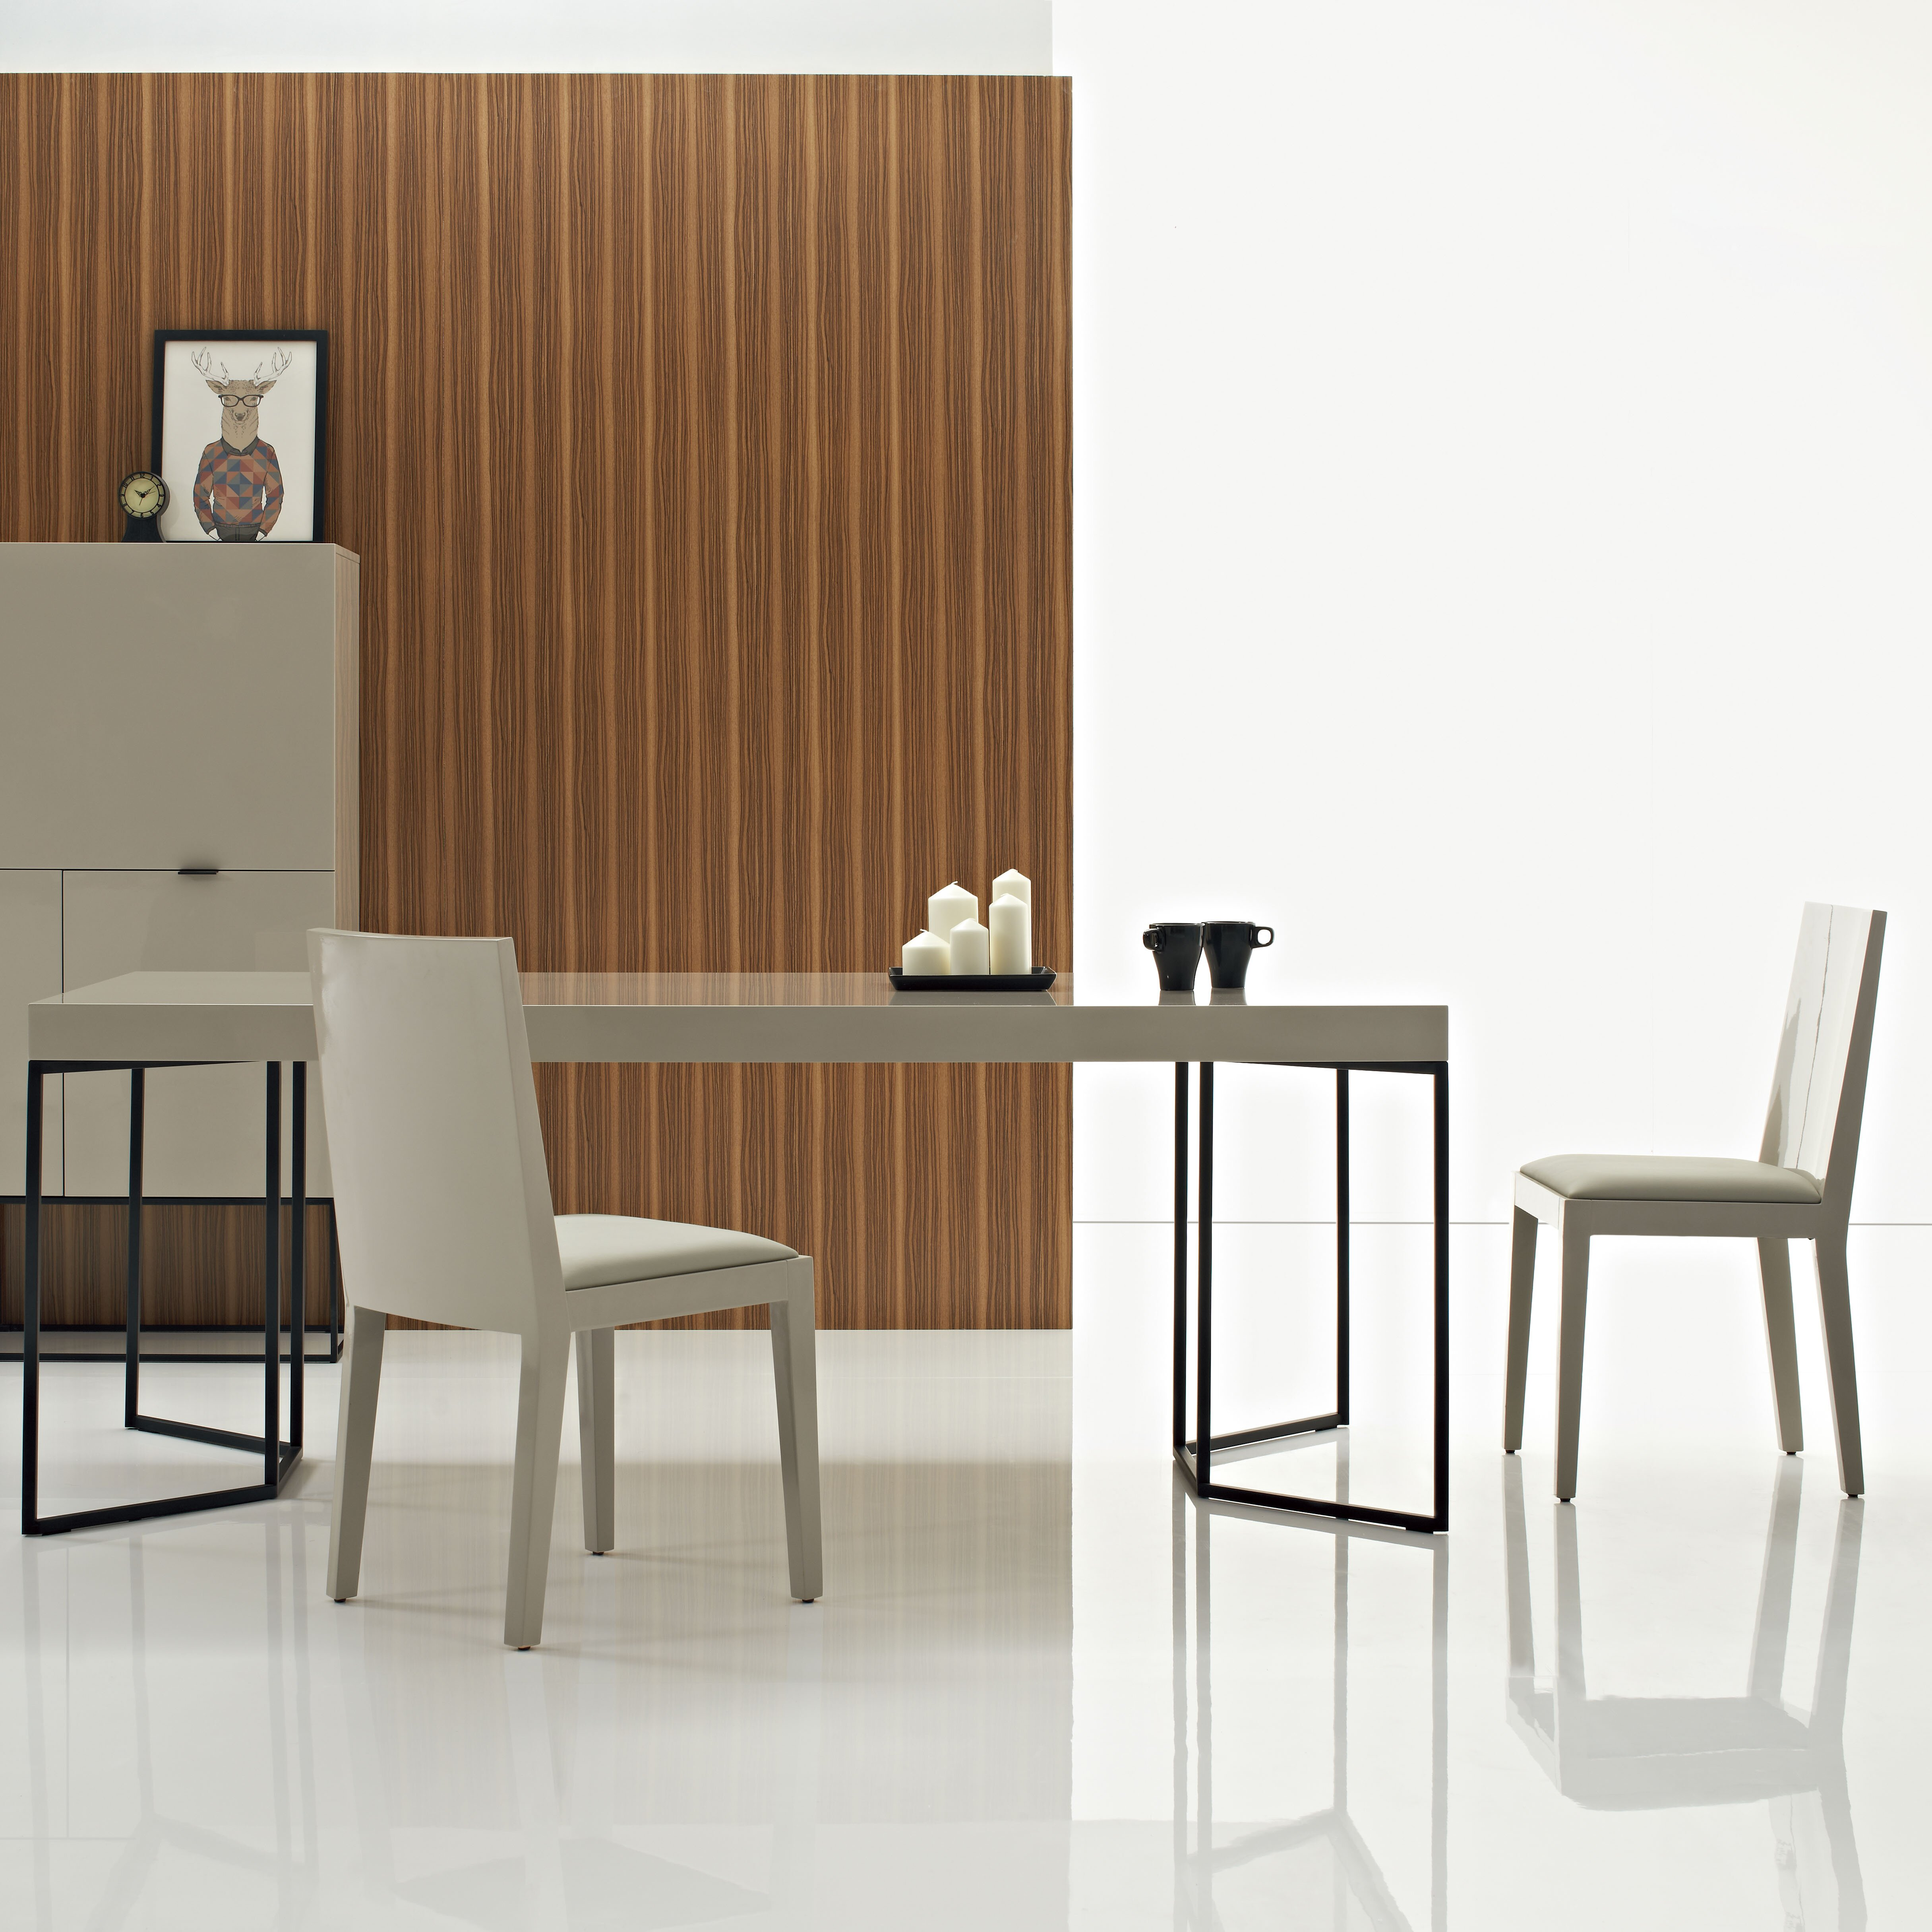 Argo furniture luna dining table reviews wayfair